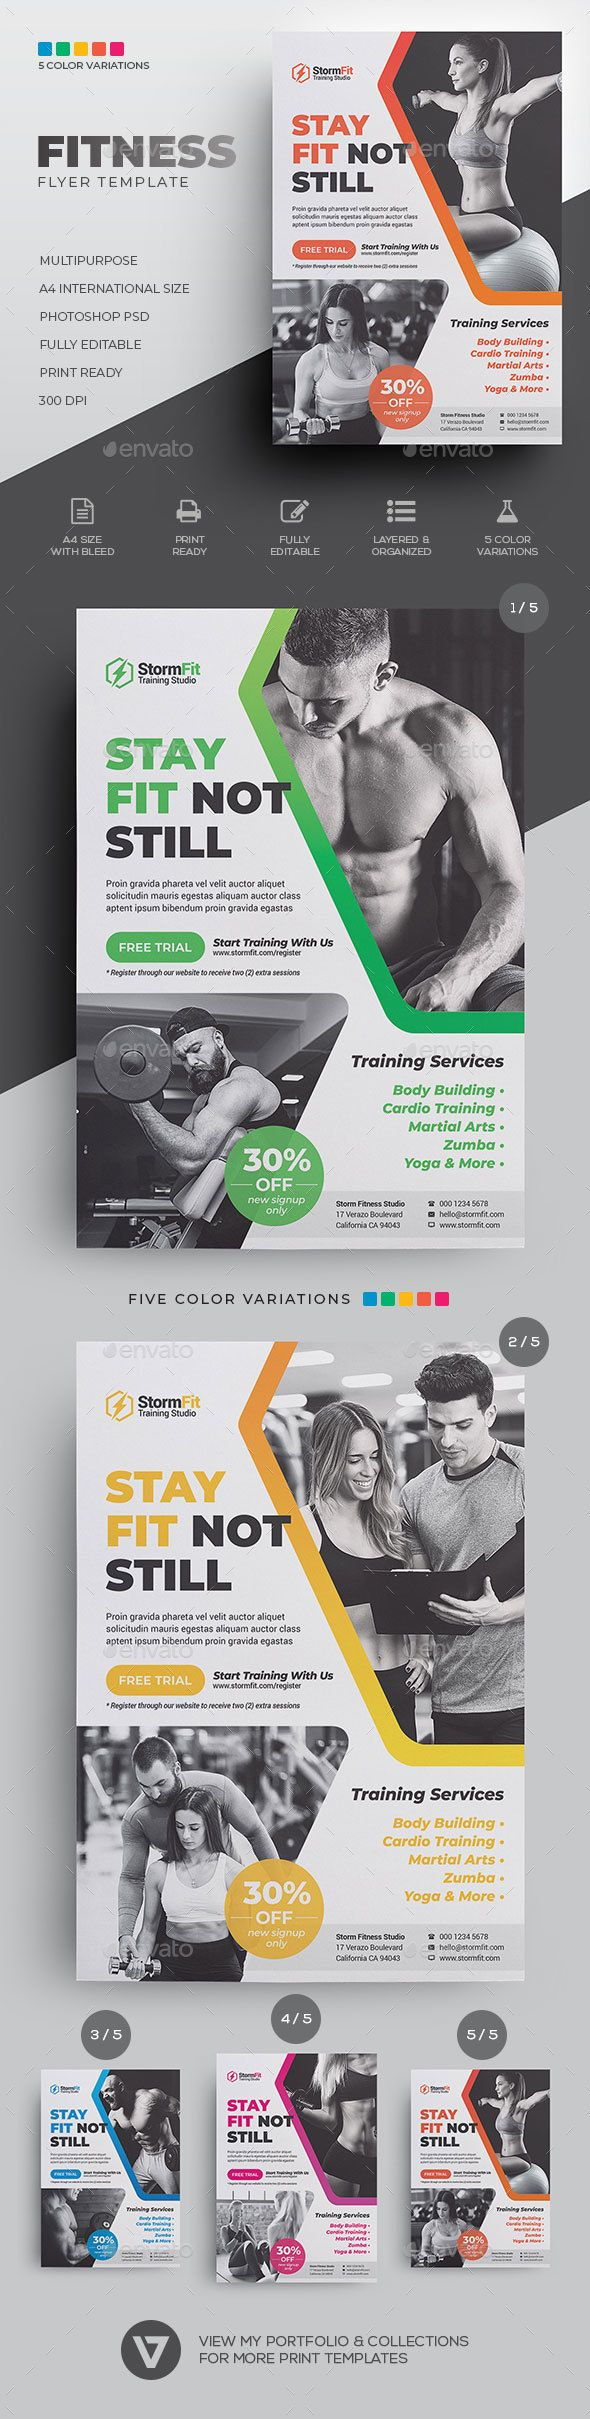 Fitness Flyer Fitness Flyer Template PSD 640